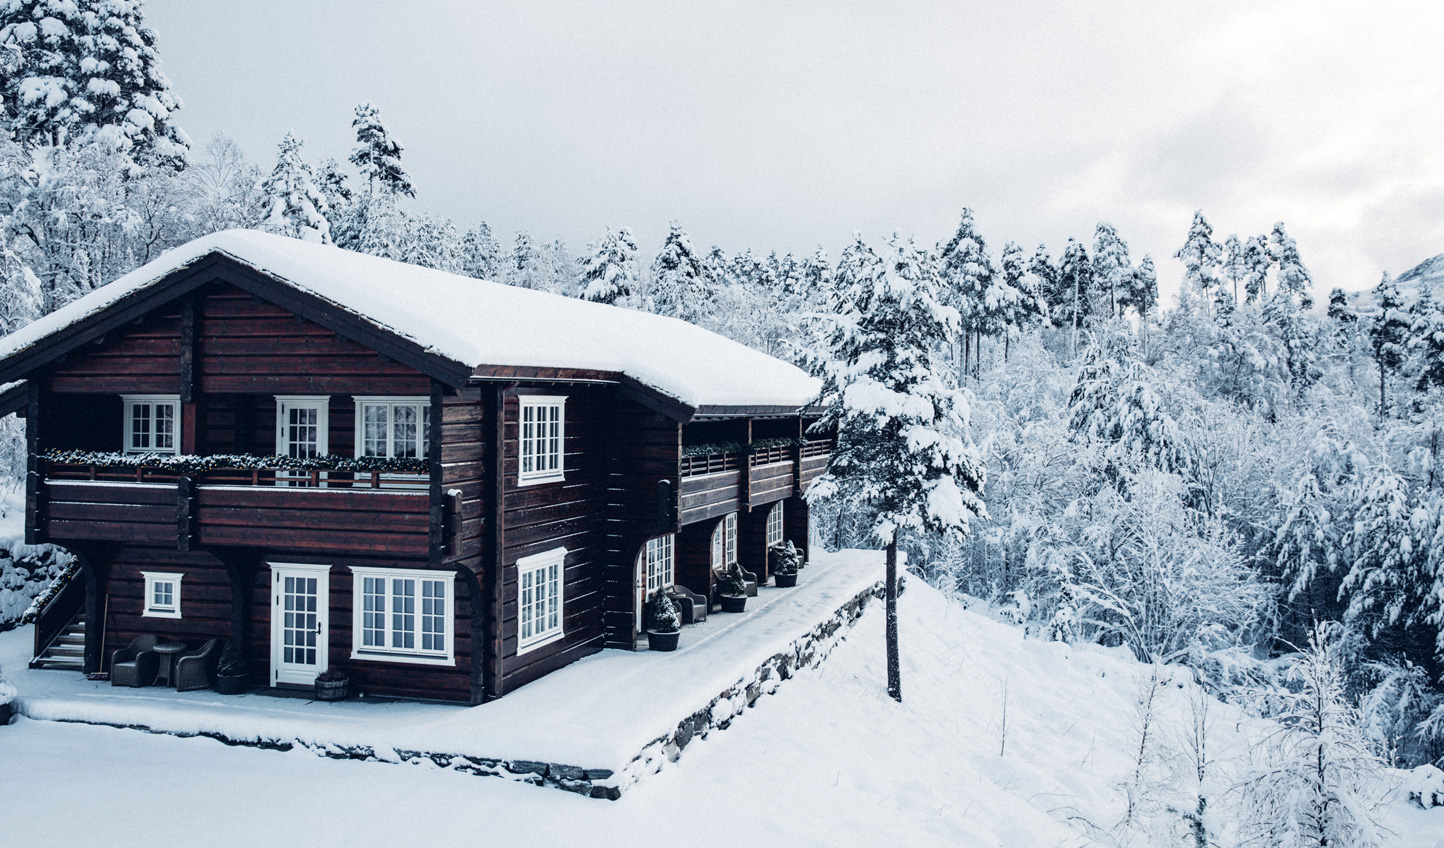 Escape the world for a day or two out in the Norwegian wilderness